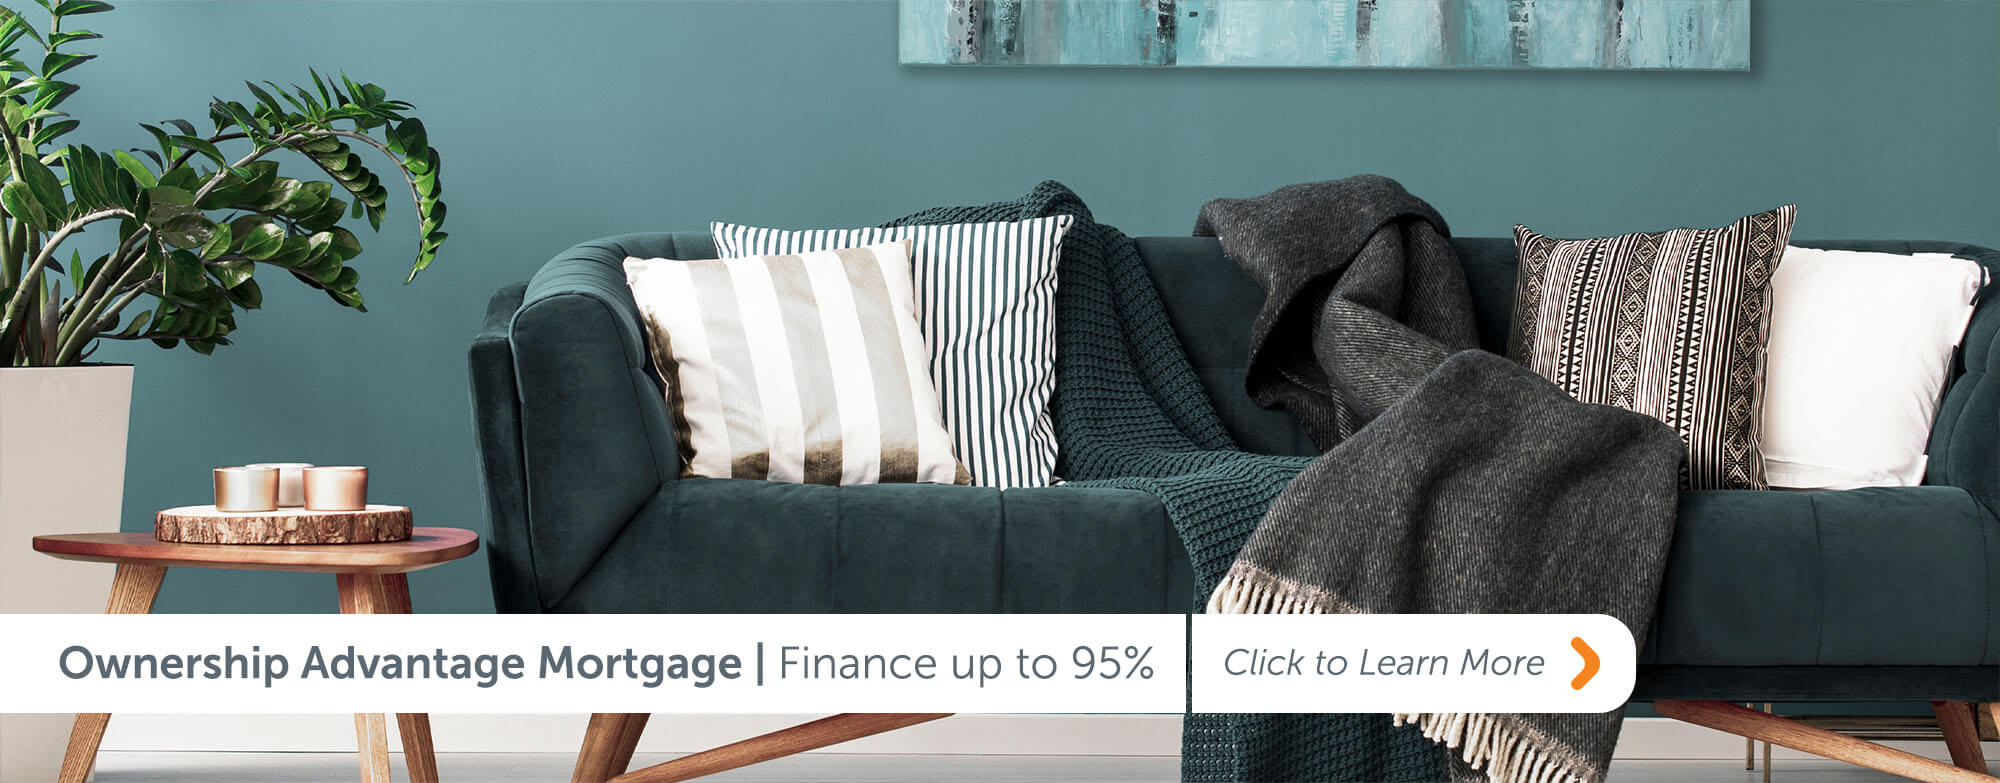 Ownership Advantage Mortgage Finance up to 95% Click to Learn More